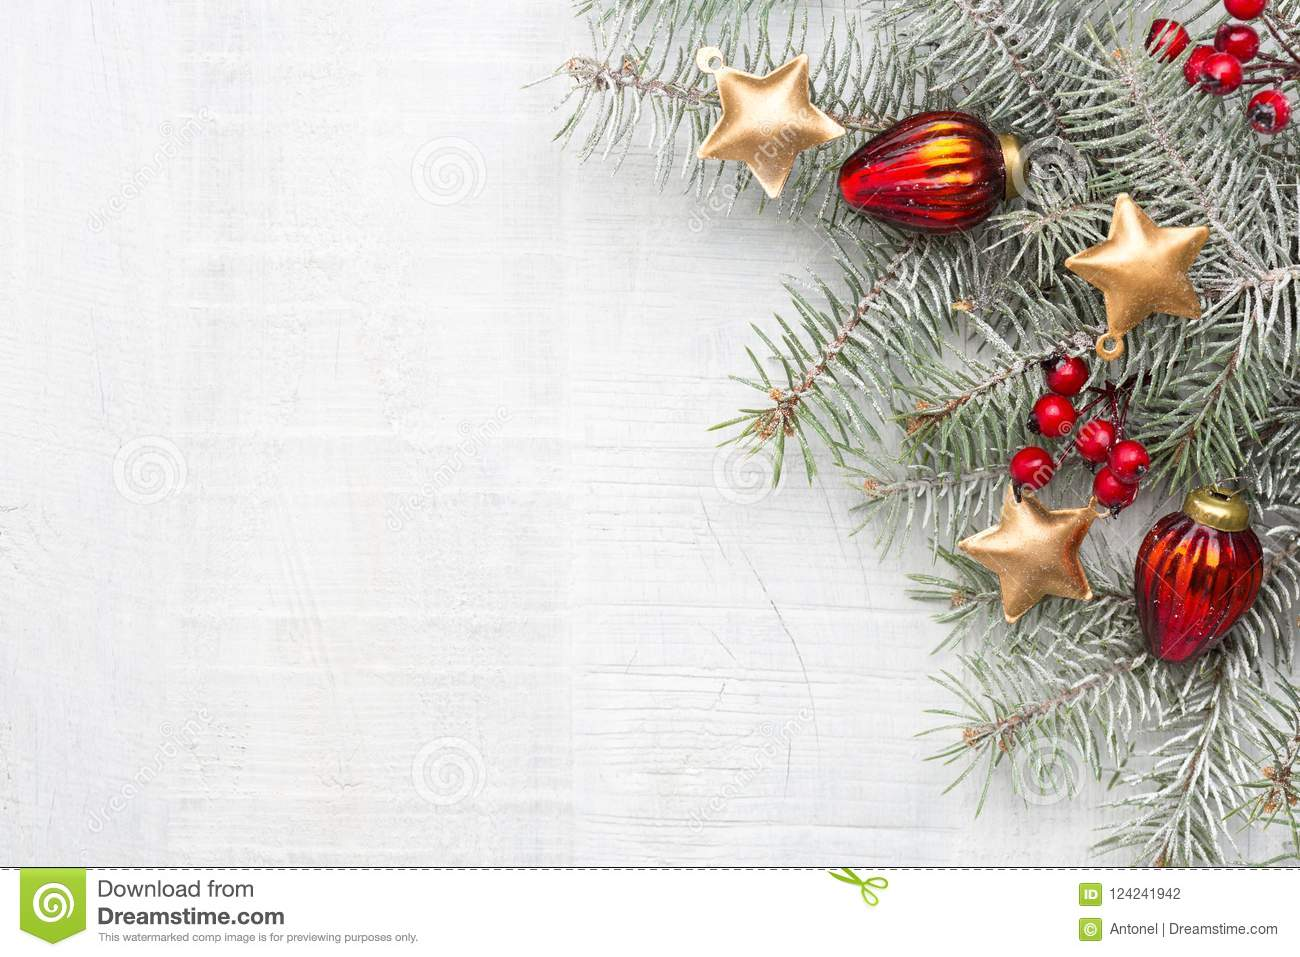 Fir branch with Christmas decorations on white rustic wooden background with copy space for text